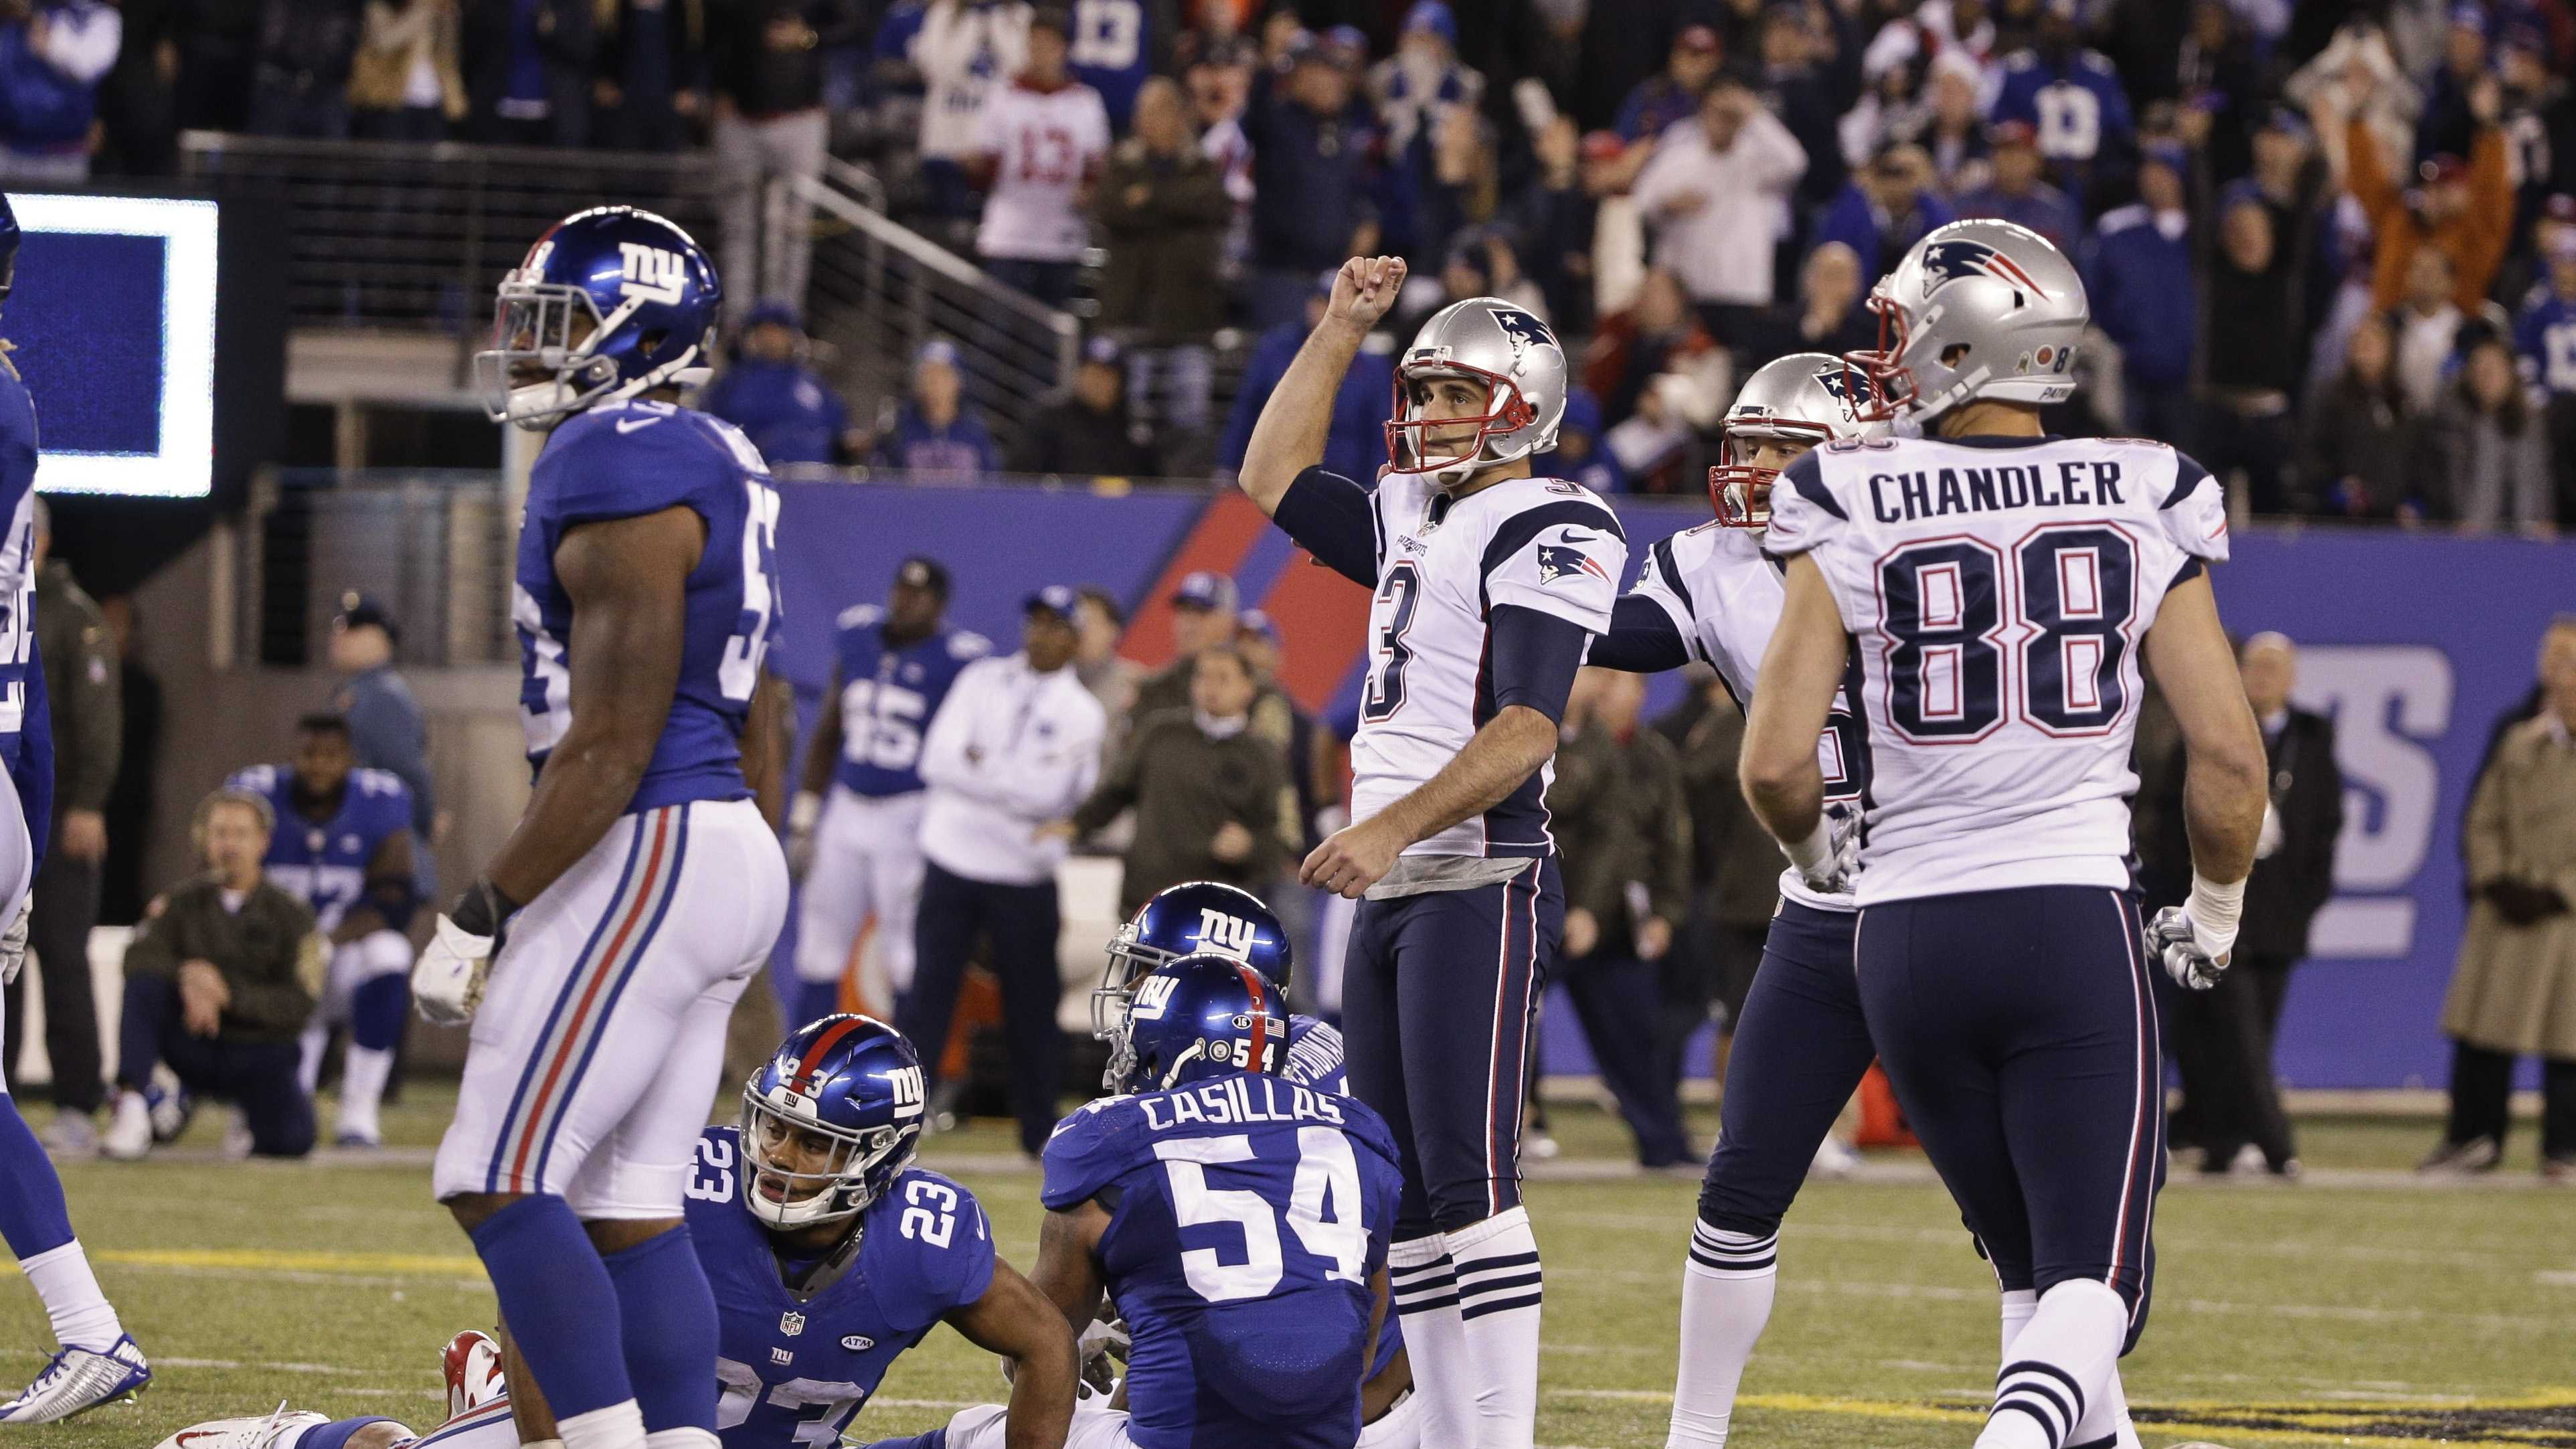 New England Patriots' Stephen Gostkowski (3) celebrates after kicking the game winning field goal as New York Giants' Rashad Jennings (23) and Jonathan Casillas (54) react during the second half of an NFL football game Sunday Nov. 15, 2015, in East Rutherford, N.J. The Patriots won 27-26.